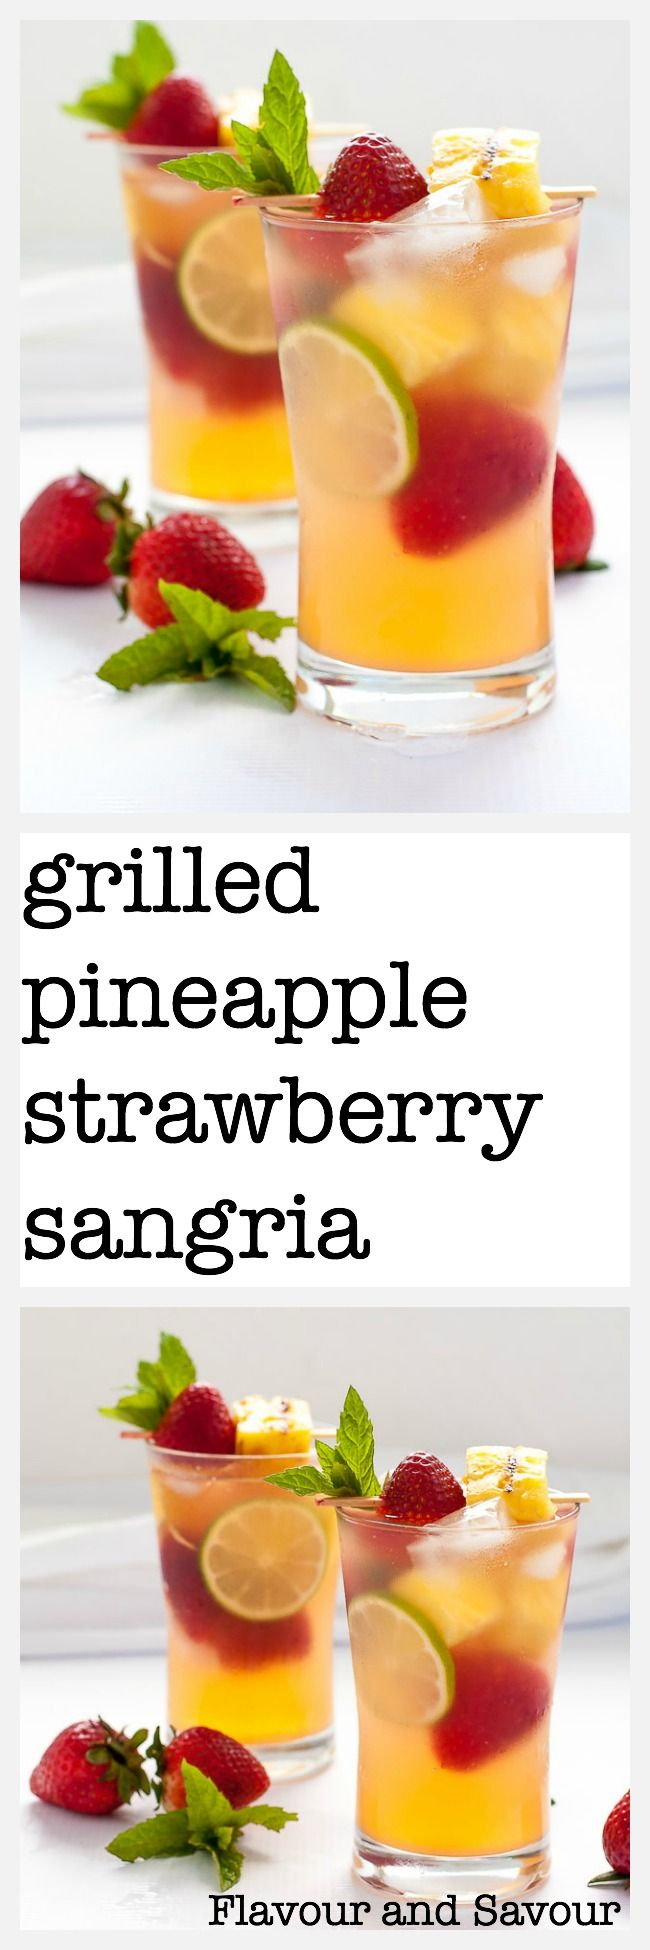 Try this white wine Grilled Pineapple Strawberry Sangria at your next outdoor party! Grilling the pineapple brings out its natural sweetness and adds flavour to this fruity, bubbly sangria. Perfect for Spring and Summer parties!